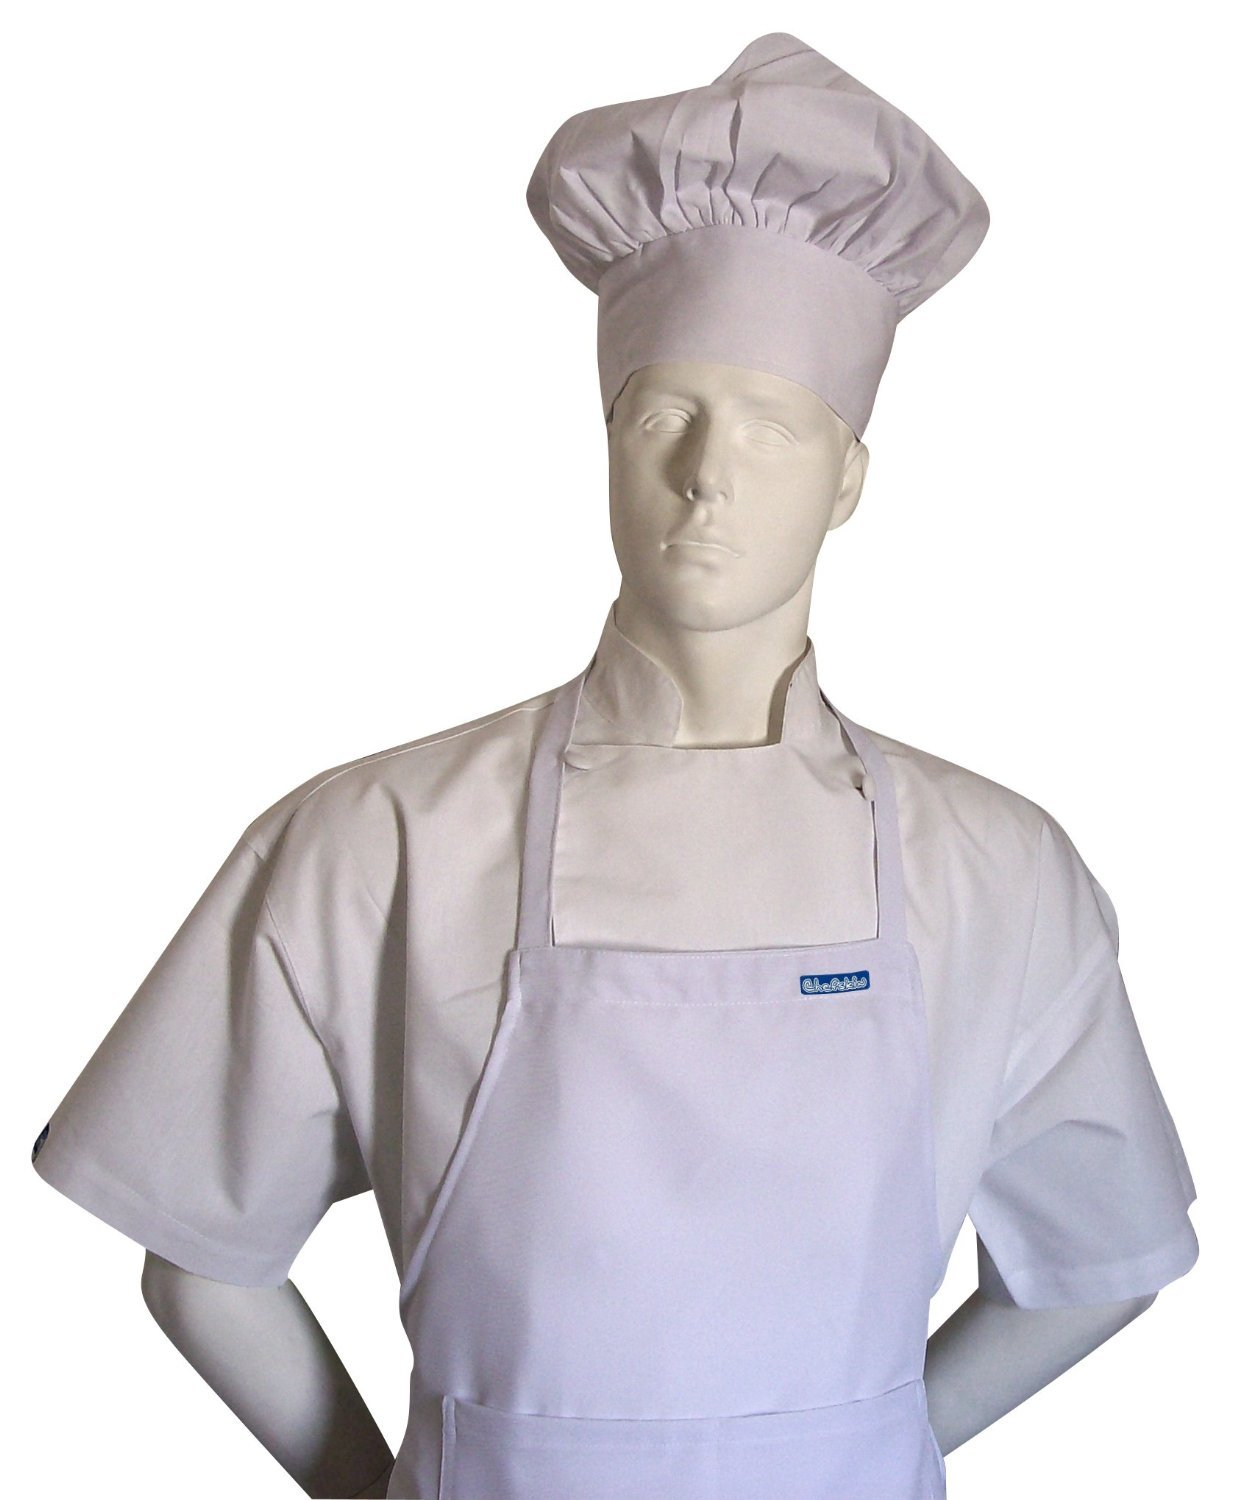 White apron and hat - Amazon Com Chefskin Chef White Adult Chef Set Apron Hat Adjustable Ultra Lite Fabric Kitchen Dining